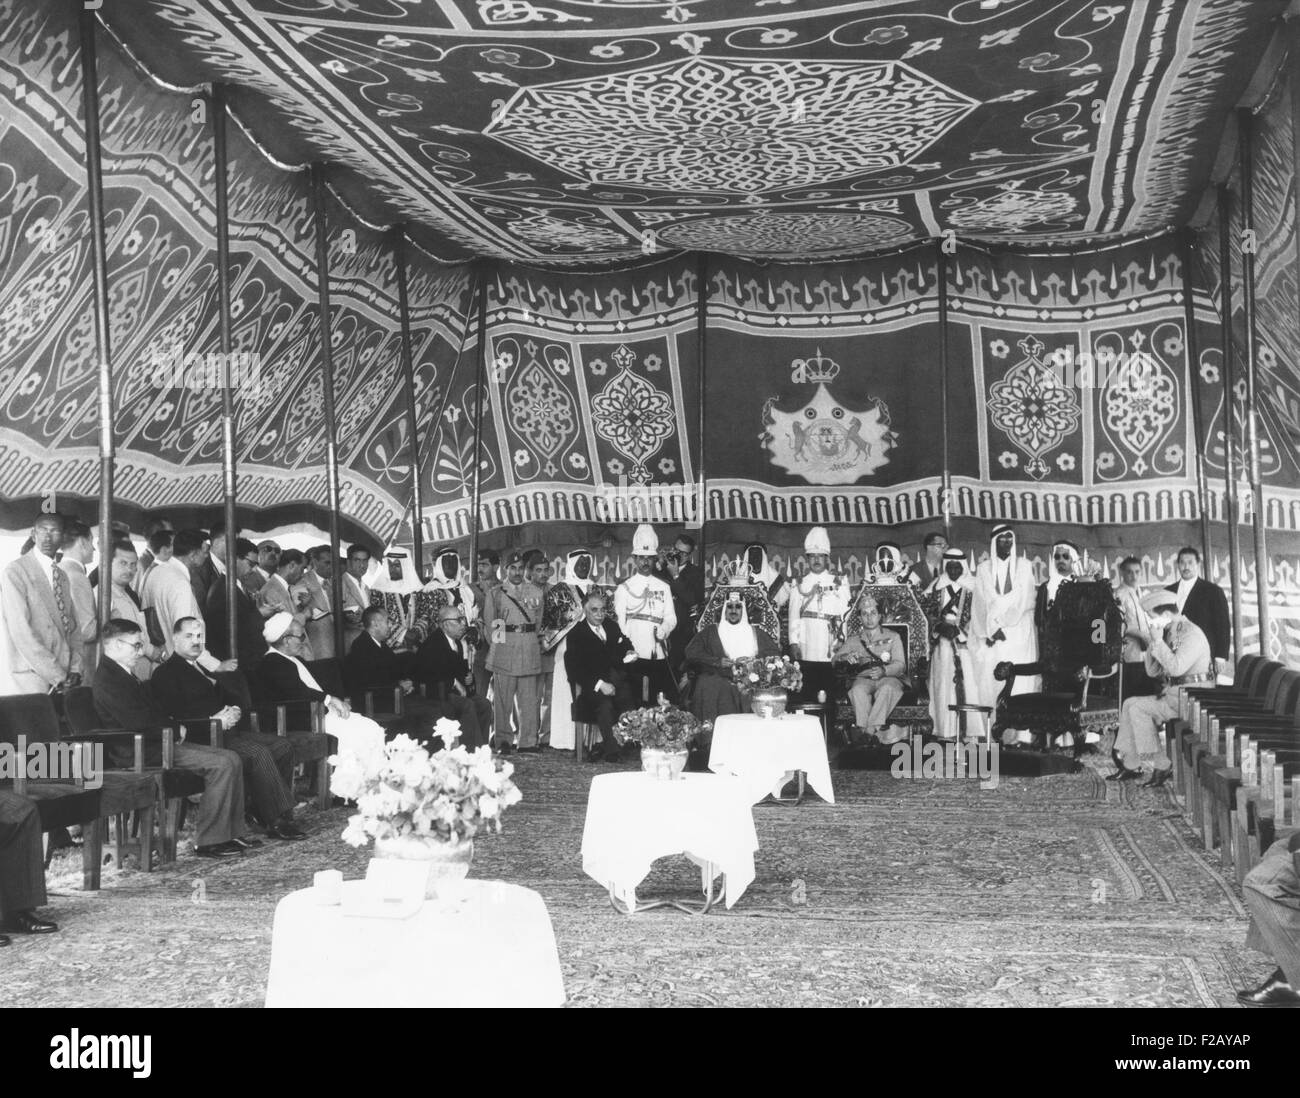 Inside a richly tapestried tent, Iraq's King Faisal meets with King Saud of Saudi Arabia. May 14, 1957. The - Stock Image